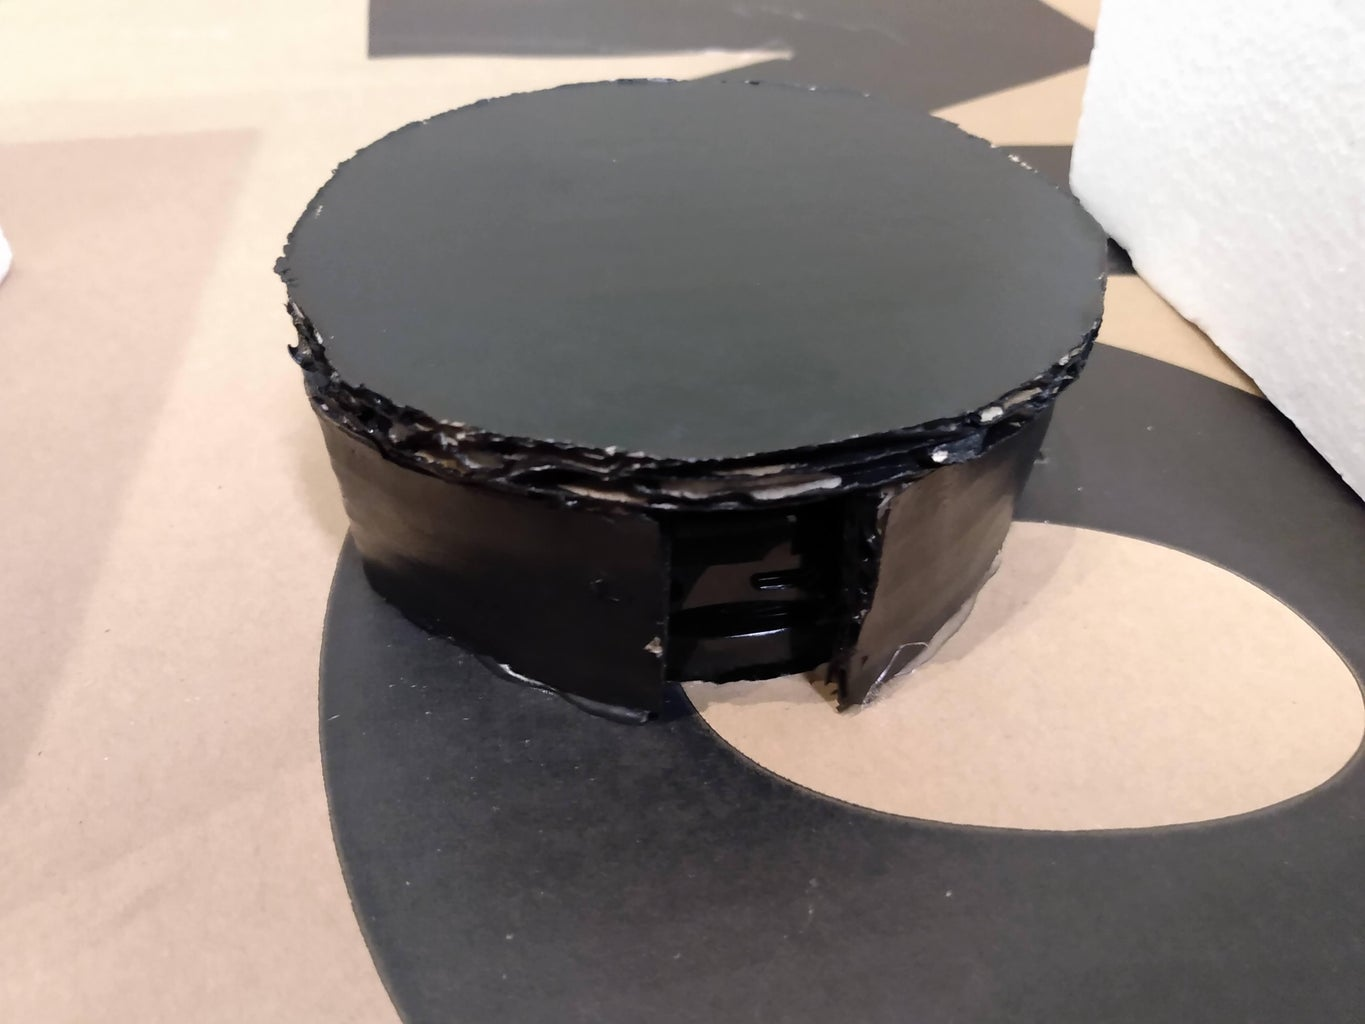 Attach Inner Support and the Holder for the Real Echo Dot